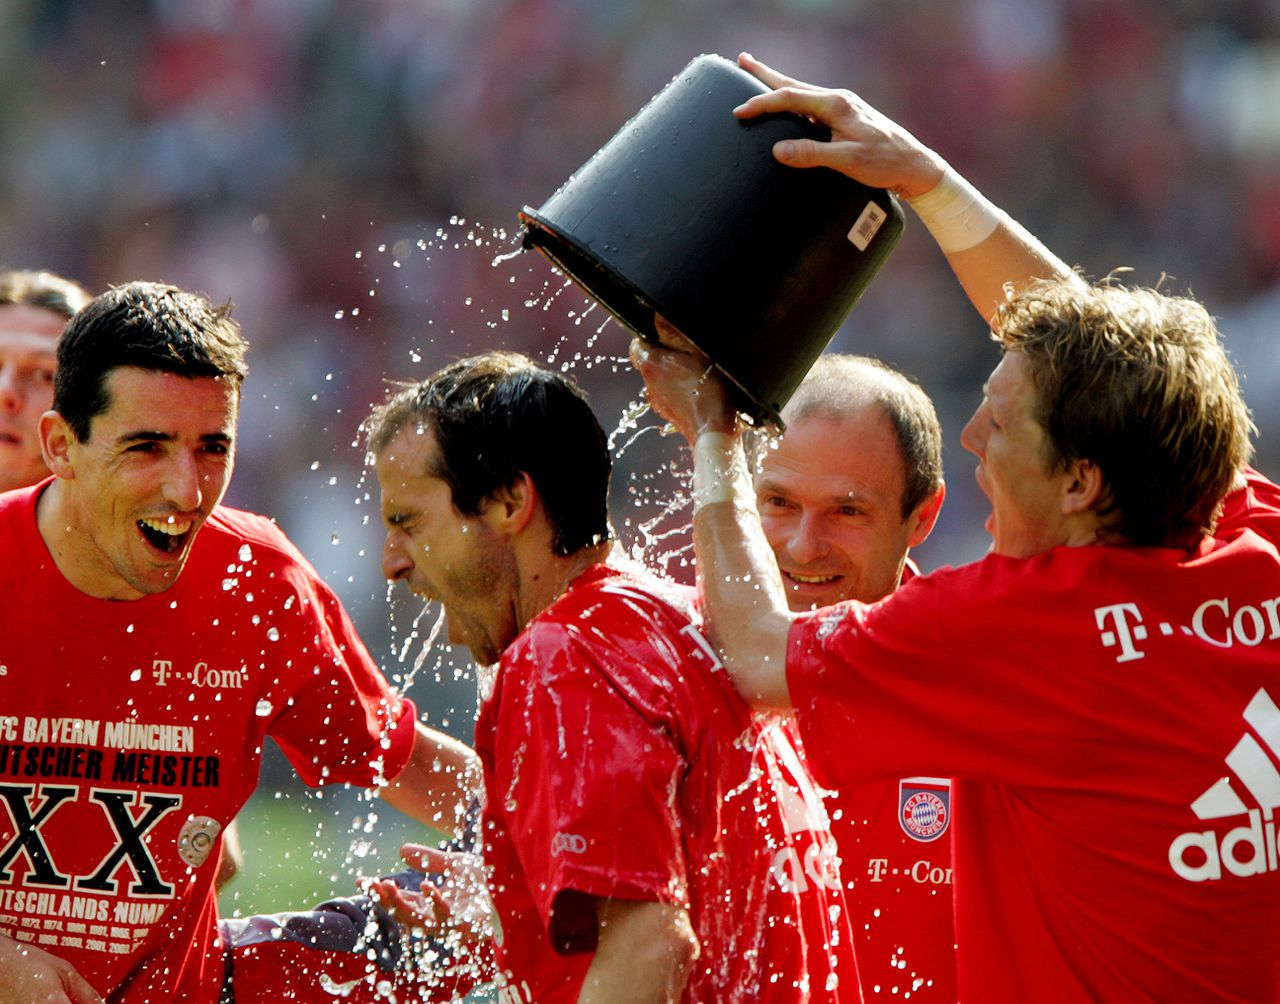 Spelers Bastian Schweinsteiger, Mehmet Scholl en Ron Makaay van Bayern München vieren de landstitel, afgelopen zaterdag. Foto AP Munich players Bastian Schweinsteiger, Mehmet Scholl and Roy Makaay of Netherlands, from right, celebrate with water after the German first soccer division between 1. FC Kaiserslautern and Bayern Munich in the Fritz-Walter stadium in Kaiserslautern, southern Germany, Saturday, May 6, 2006. Bayern Munich clinched its 20th German title by drawing 1-1 at FC Kaiserslautern on Saturday.(AP Photo/Michael Probst)** EMBARGOED AGAINST ANY MOBILE USE (NO MMS) UNTIL 18:30 GMT **